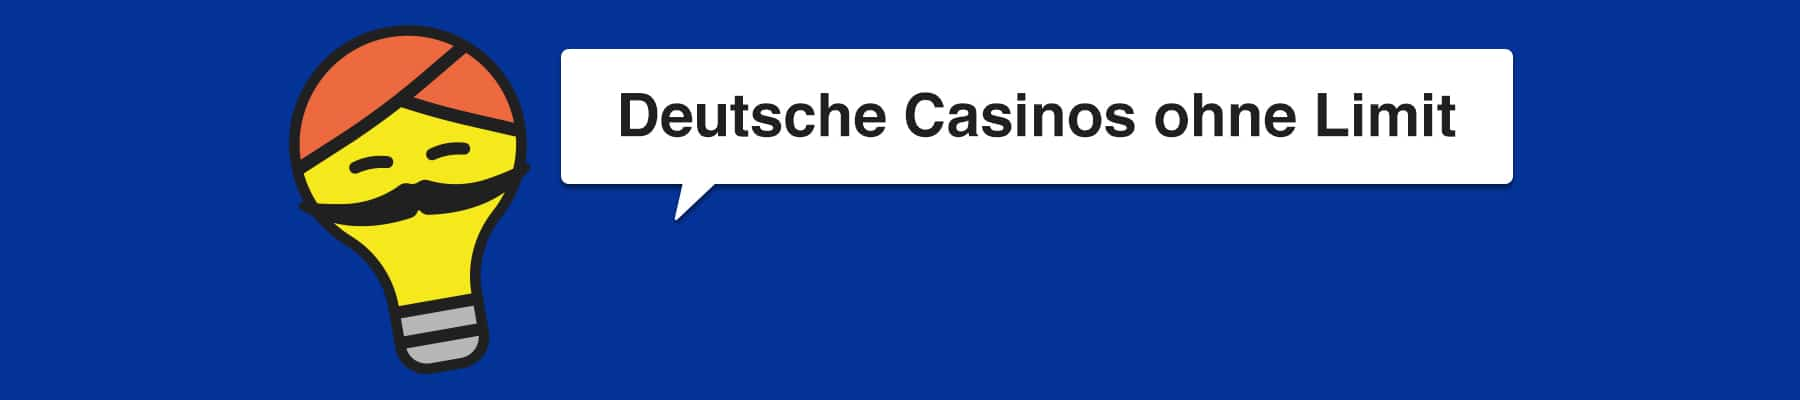 Deutsche Casinos ohne Limit